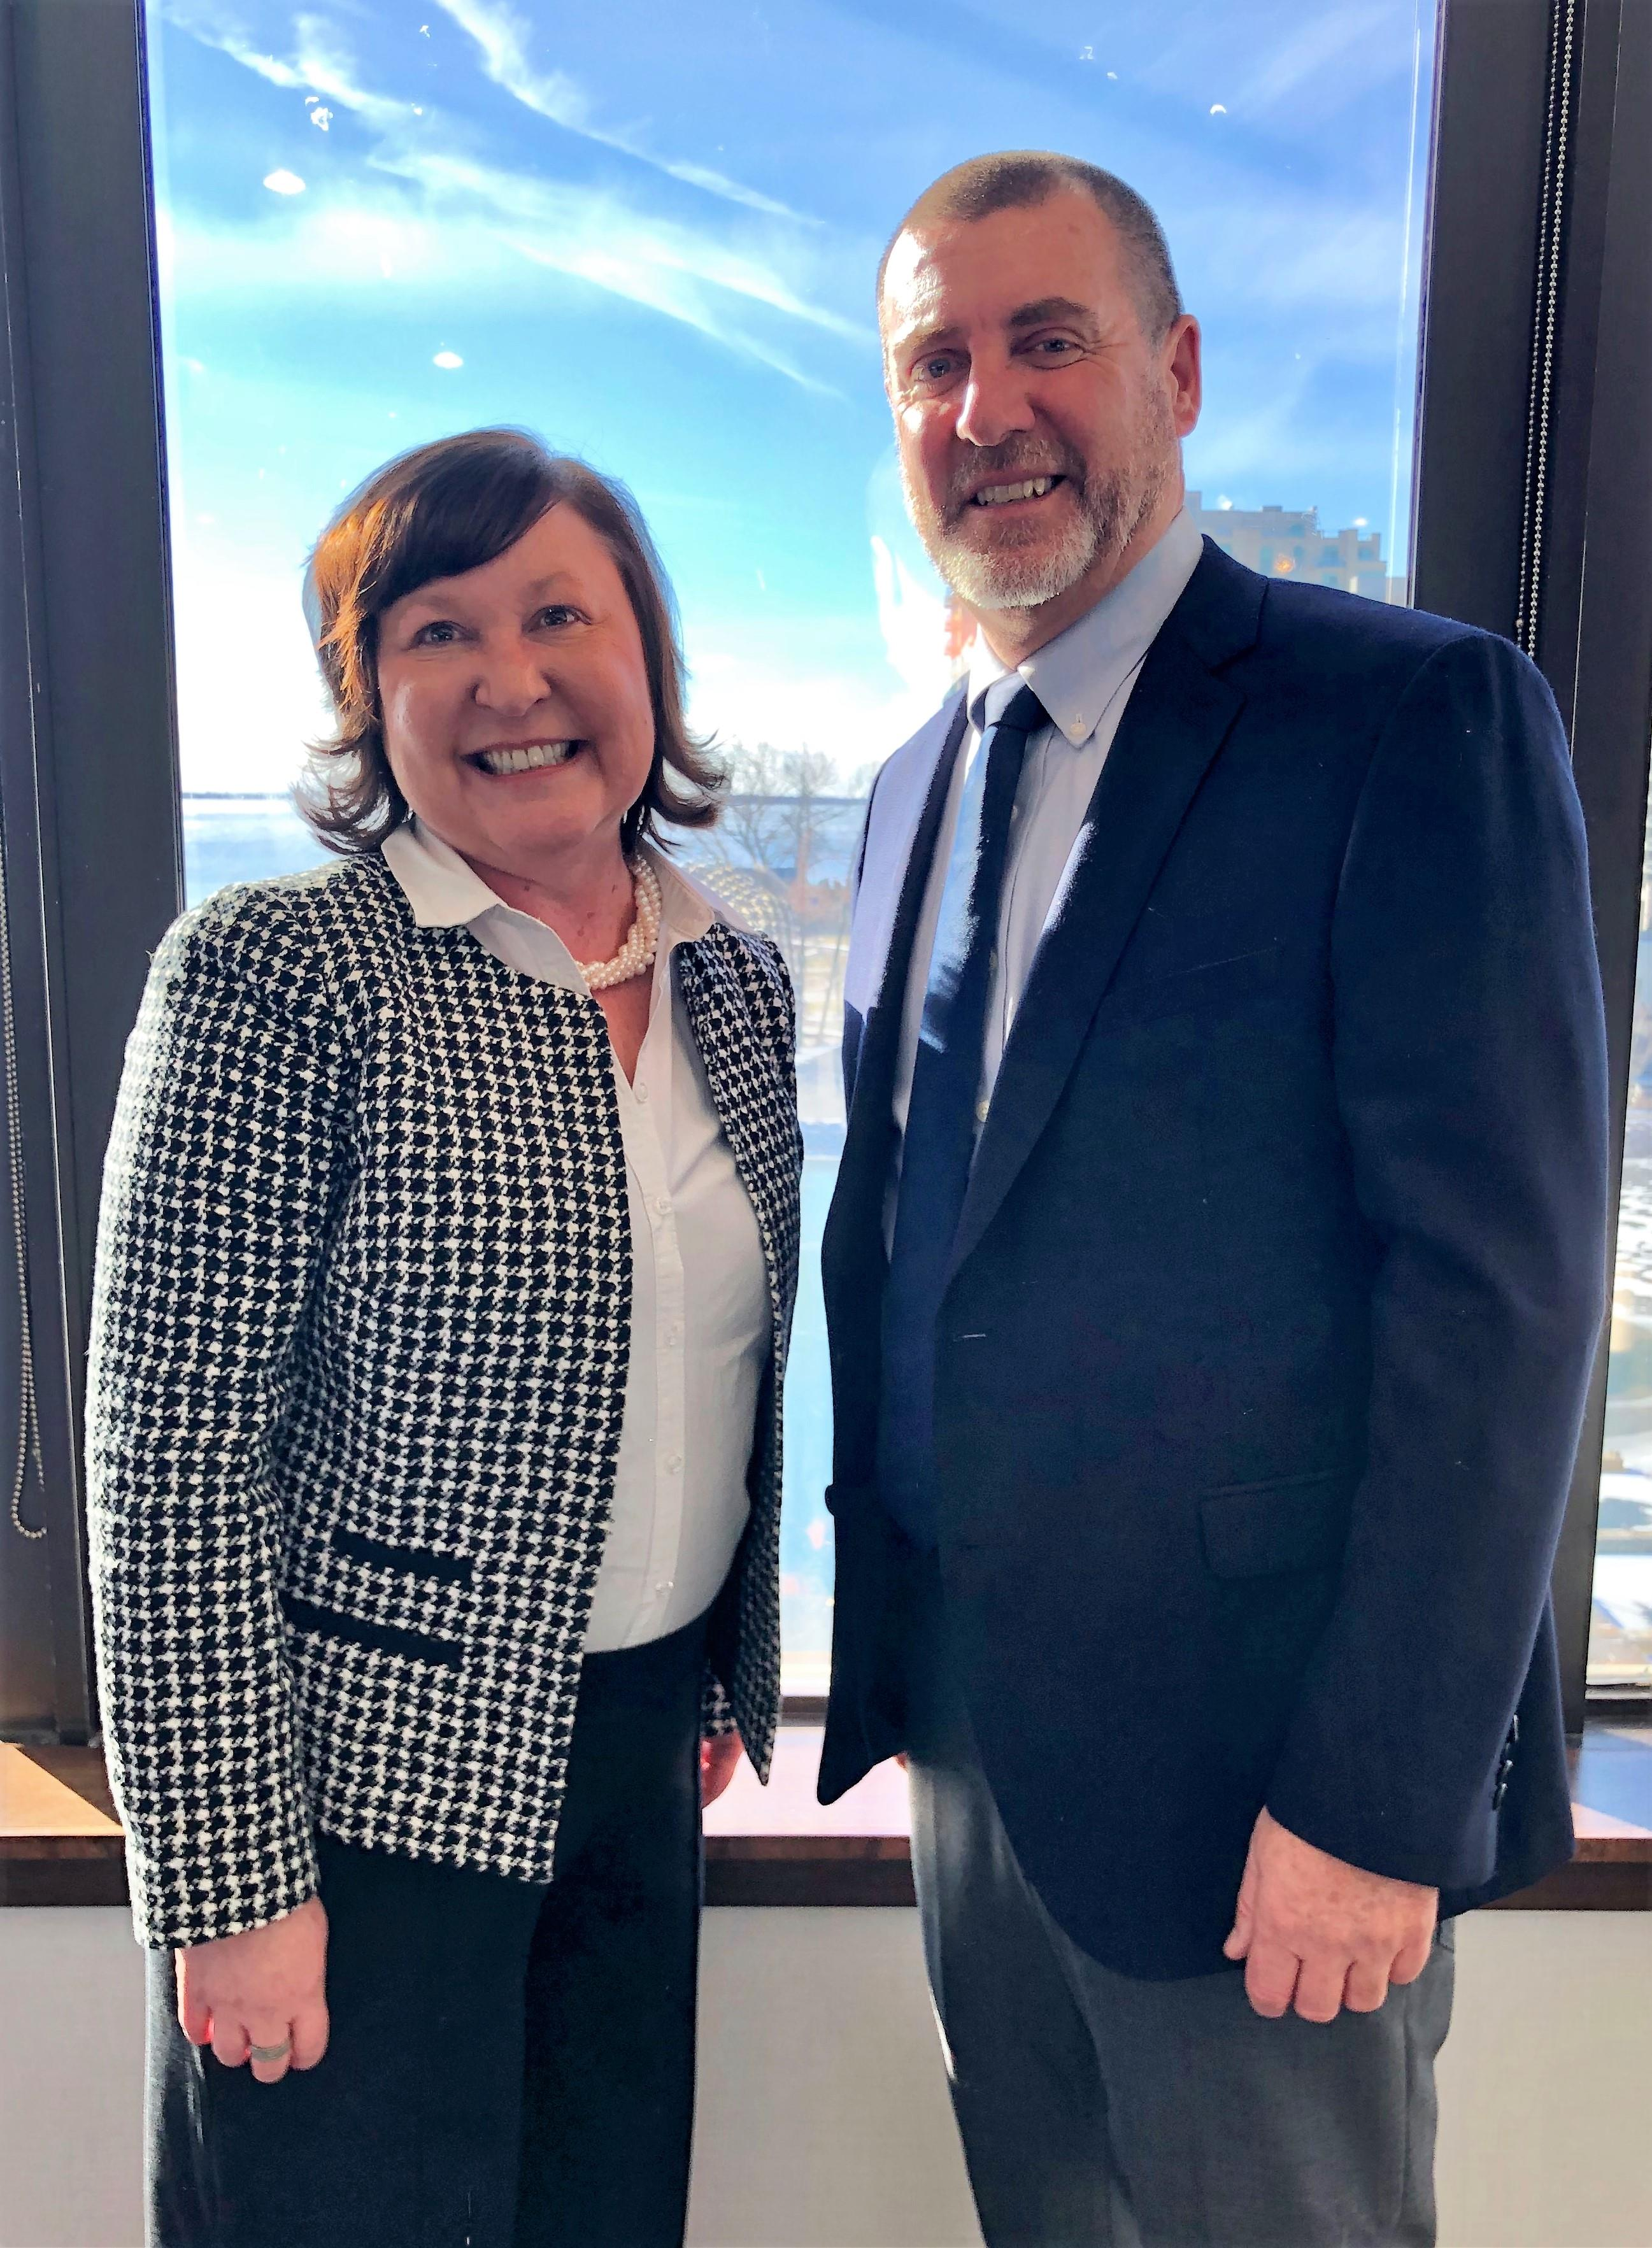 EOWC 2019 Chair, Andy Letham and Vice-Chair, Jennifer Murphy